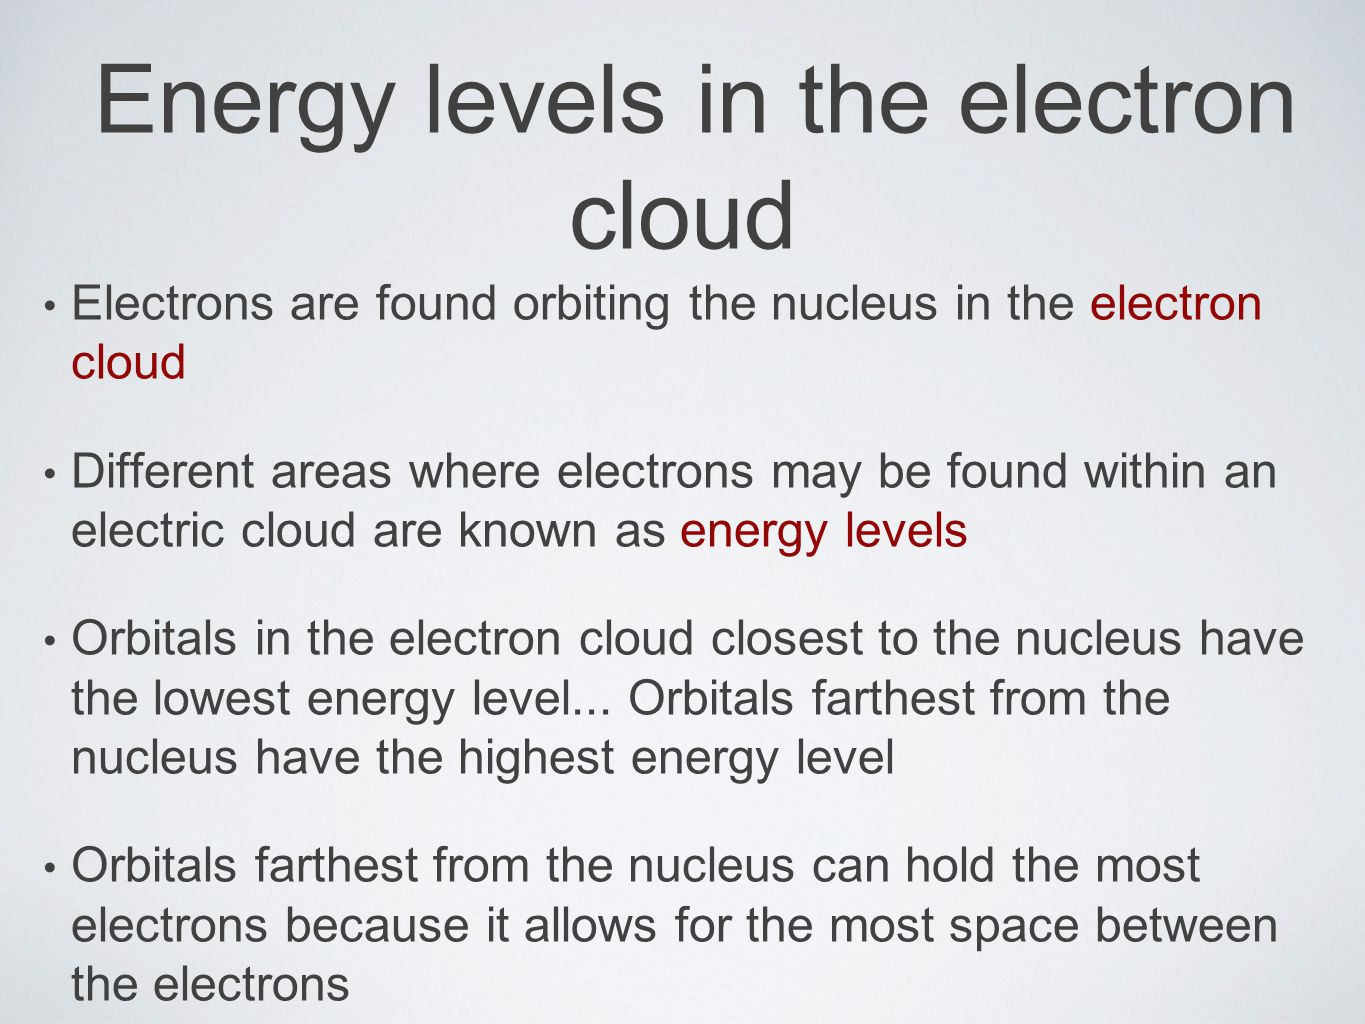 Energy levels in the electron cloud Electrons are found orbiting the nucleus in the electron cloud Different areas where electrons may be found within an electric cloud are known as energy levels Orbitals in the electron cloud closest to the nucleus have the lowest energy level...